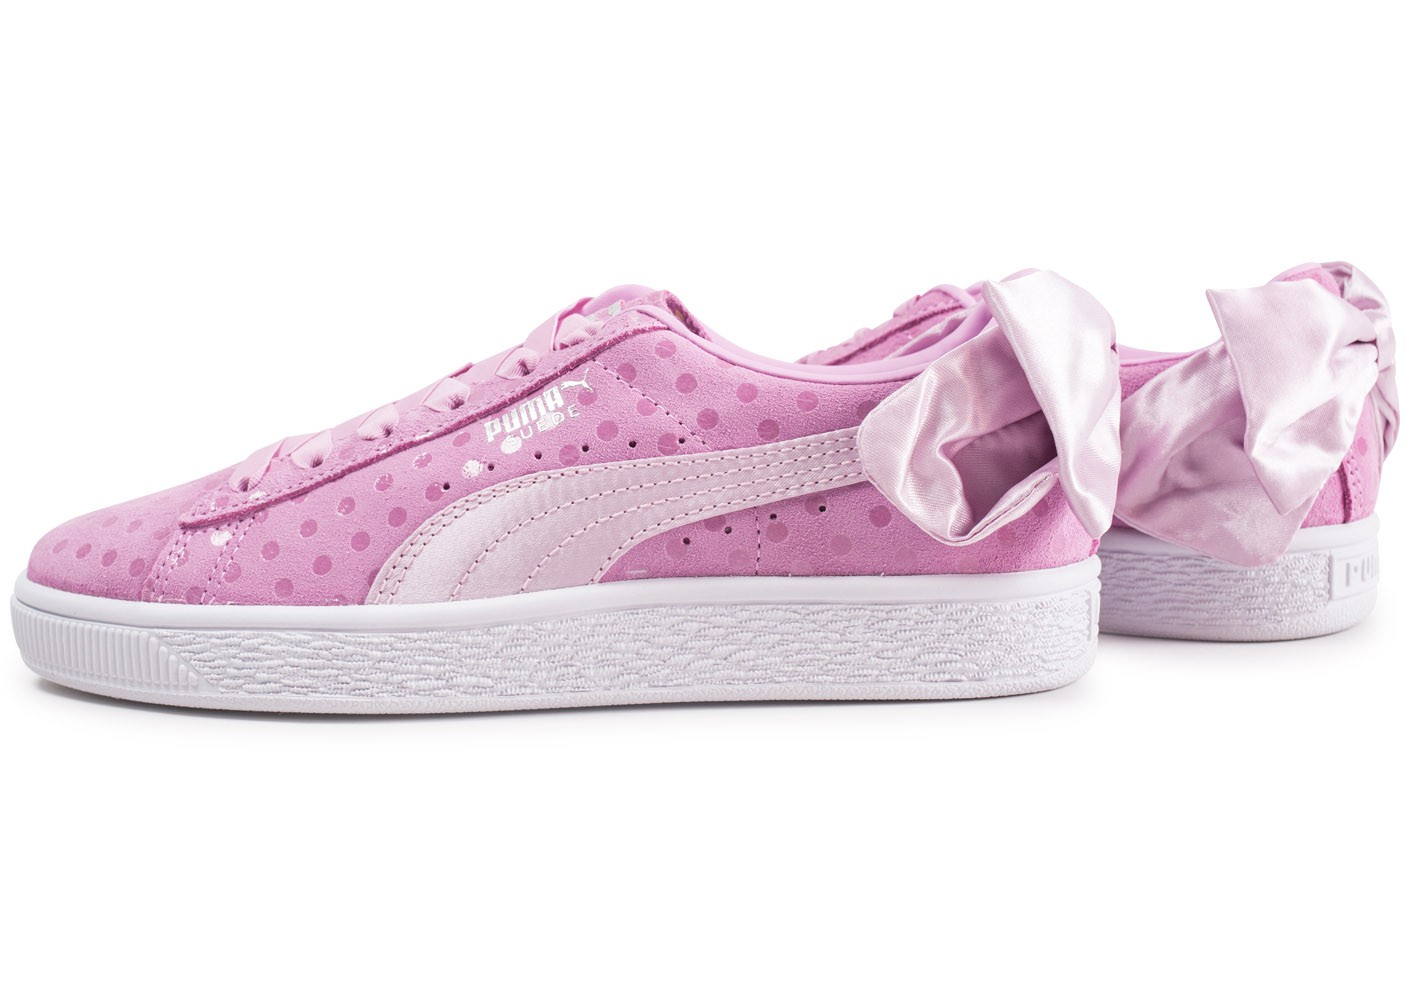 Puma Suede Bow Dots rose Chaussures Prix stylés Chausport